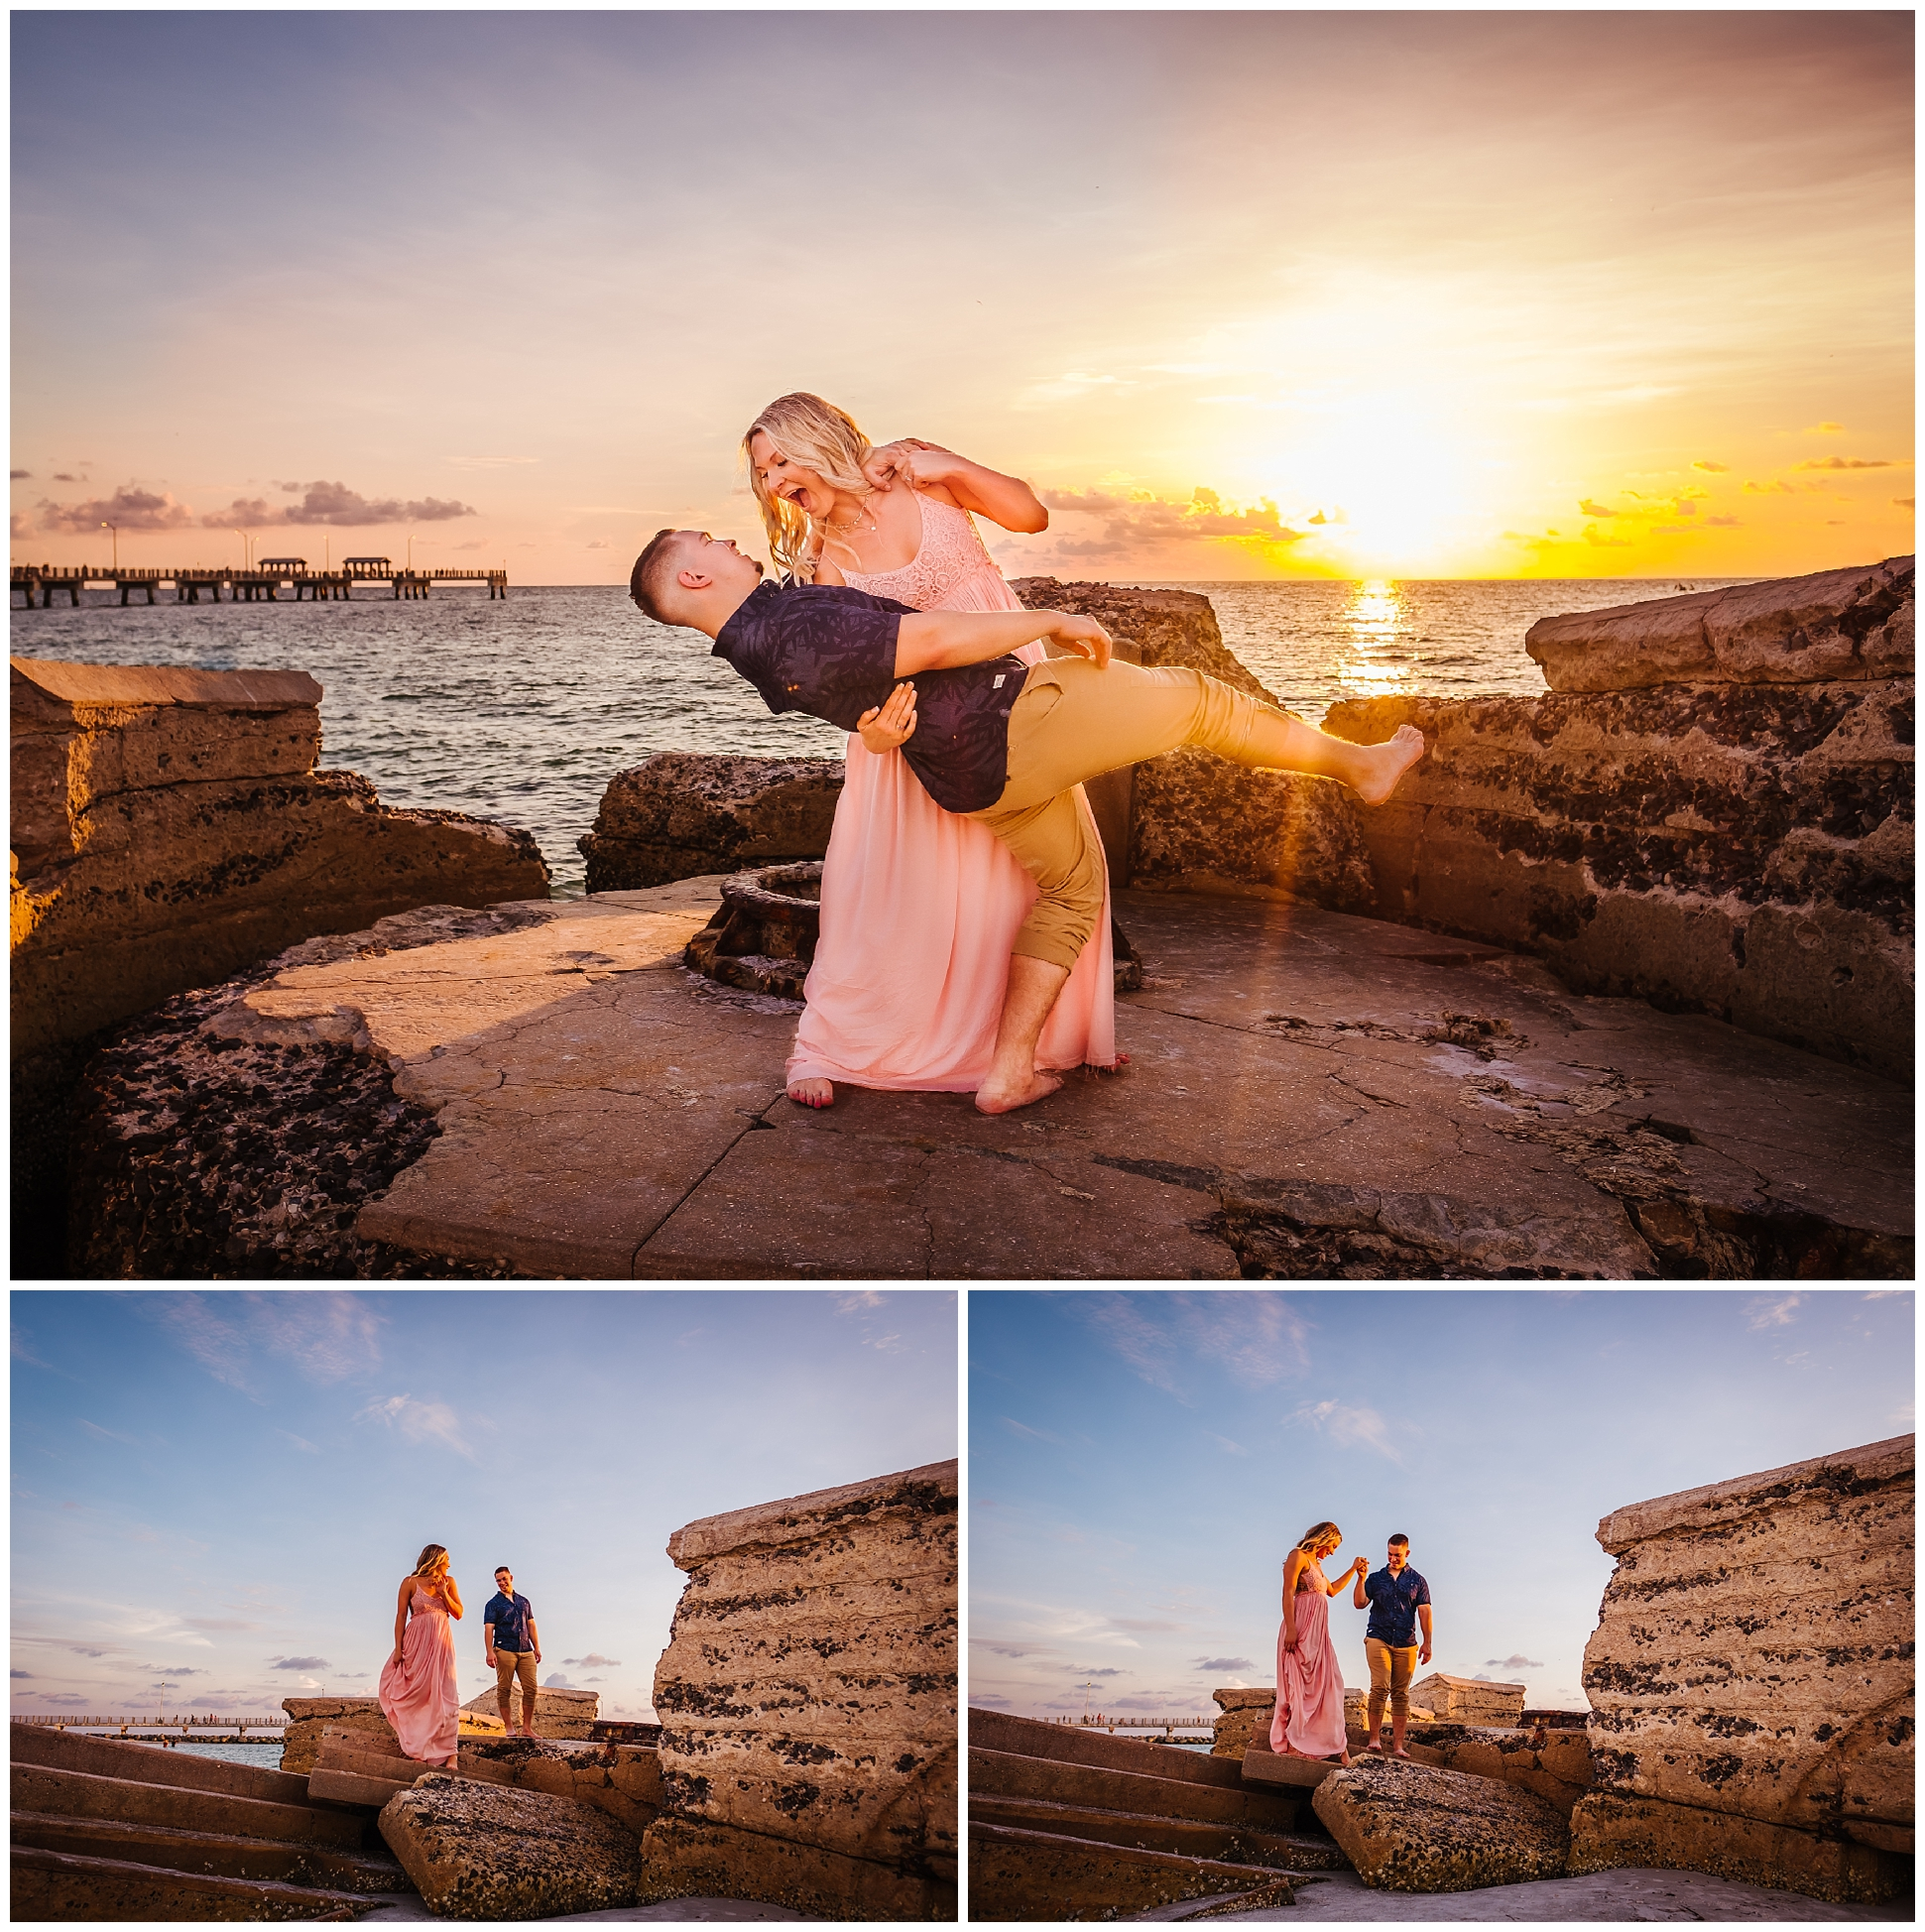 fort-desoto-engagement-photos-florida-beach-sunset_0238.jpg